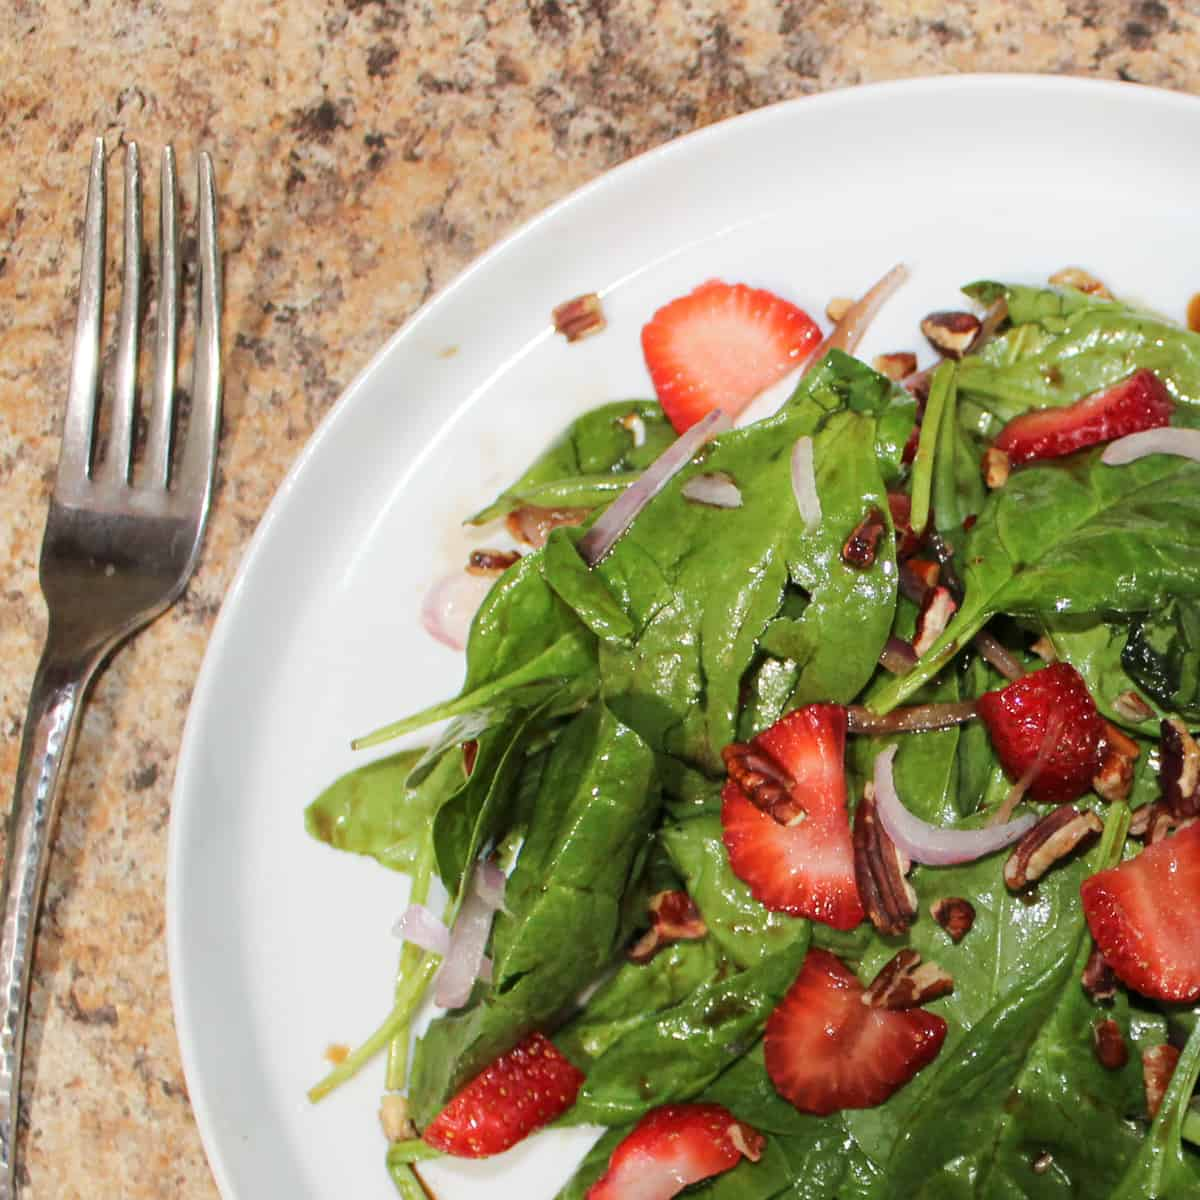 strawberry spinach salad on a plate with a fork